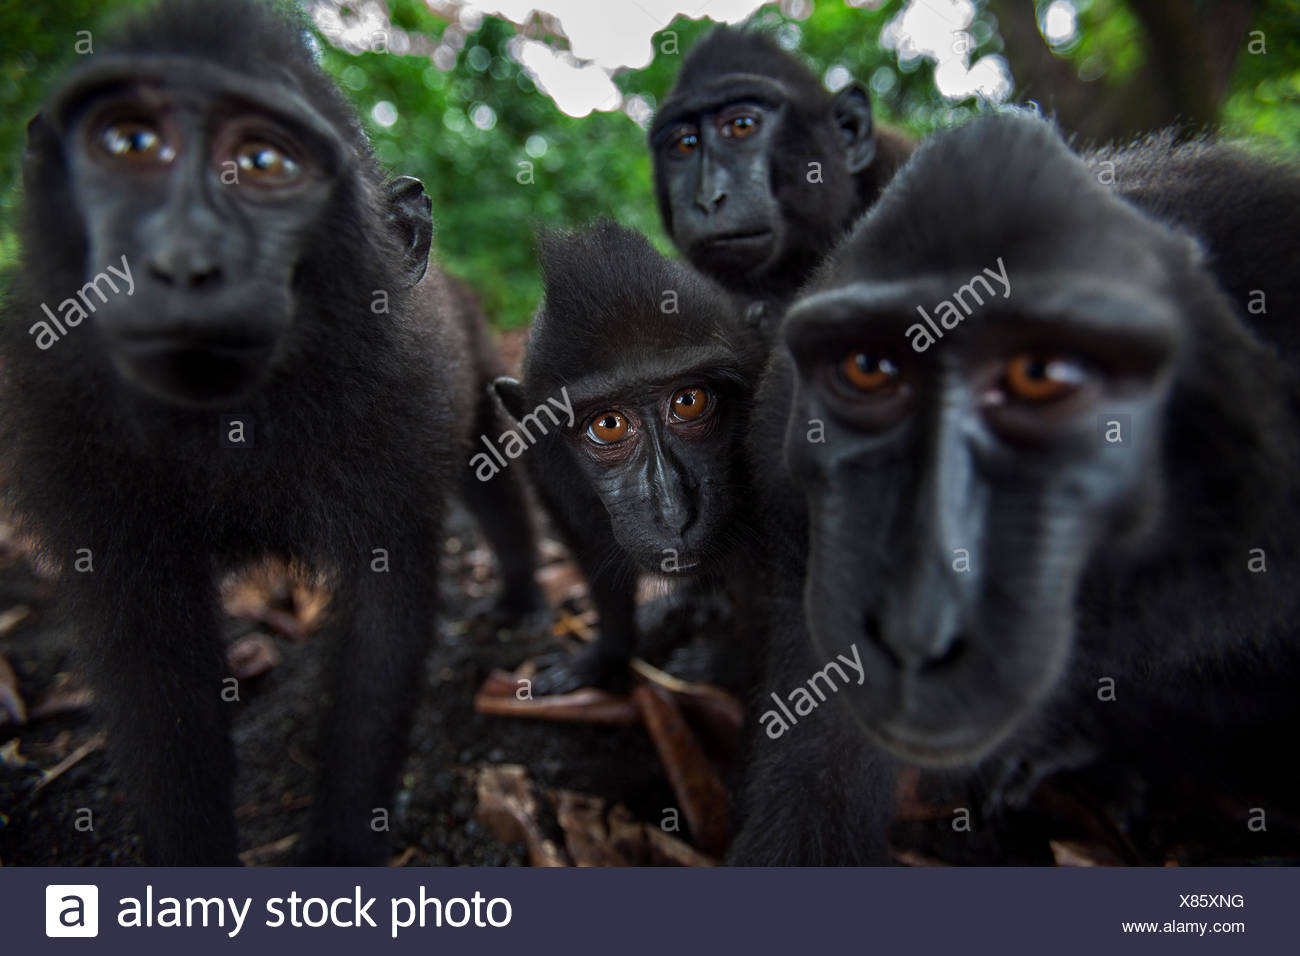 Celebes / Black crested macaque (Macaca nigra) group up close, watching with curiosity, Tangkoko National Park, Sulawesi, Indonesia. - Stock Image